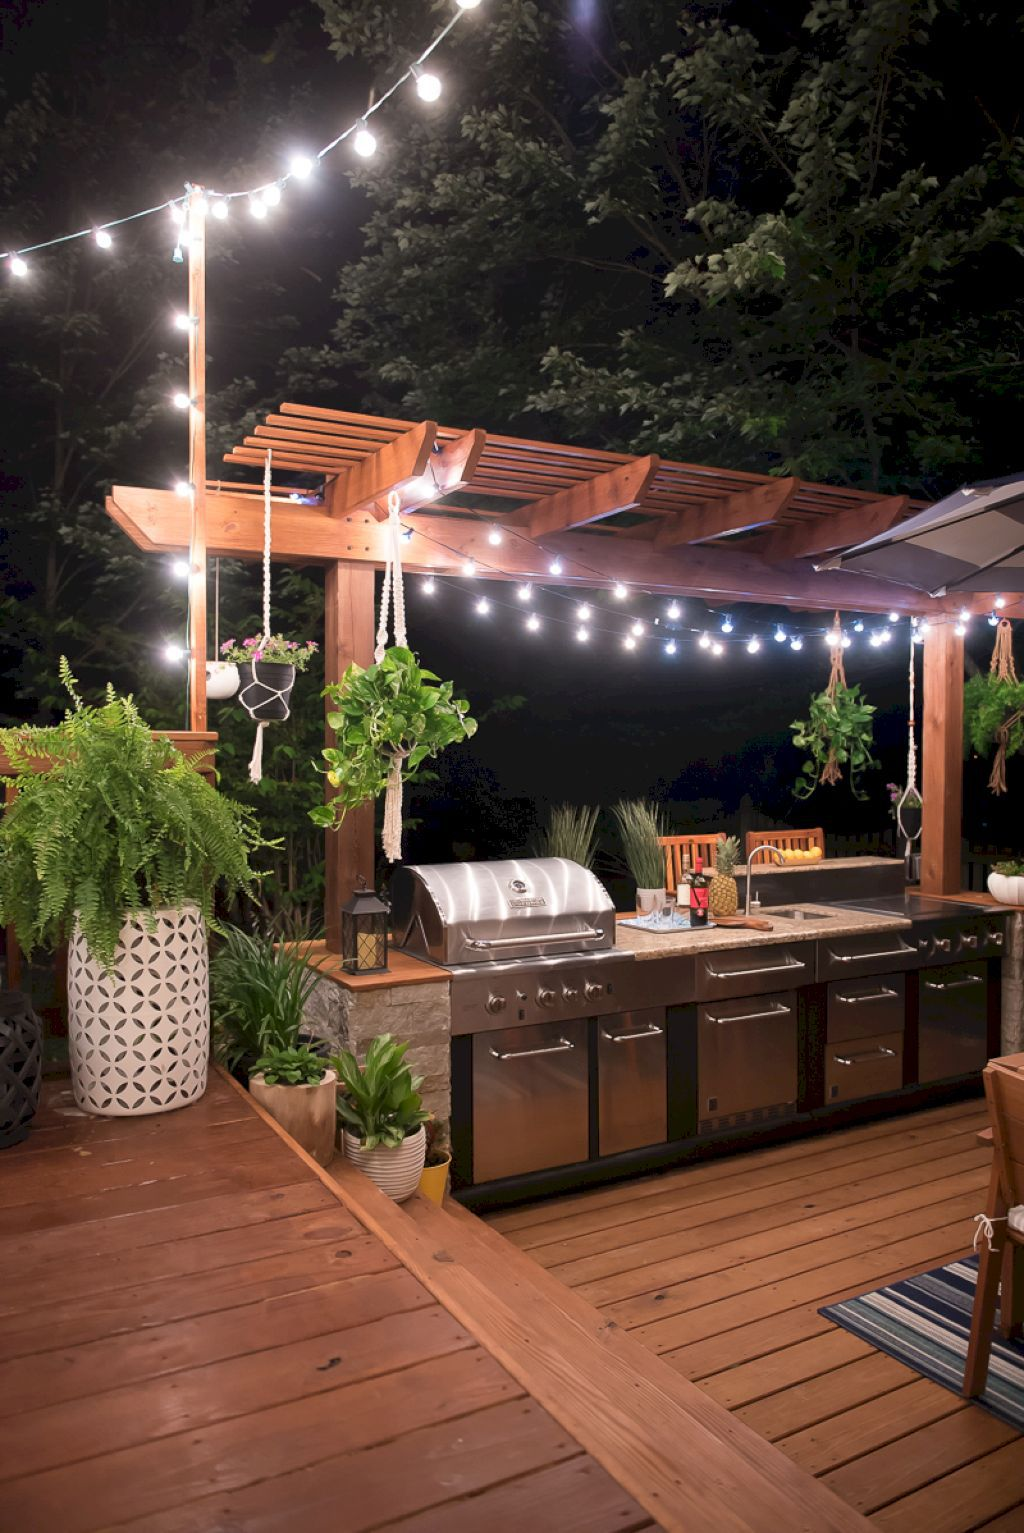 extraordinary backyard outdoor kitchen ideas | 30 Best Outdoor Kitchen Design Ideas